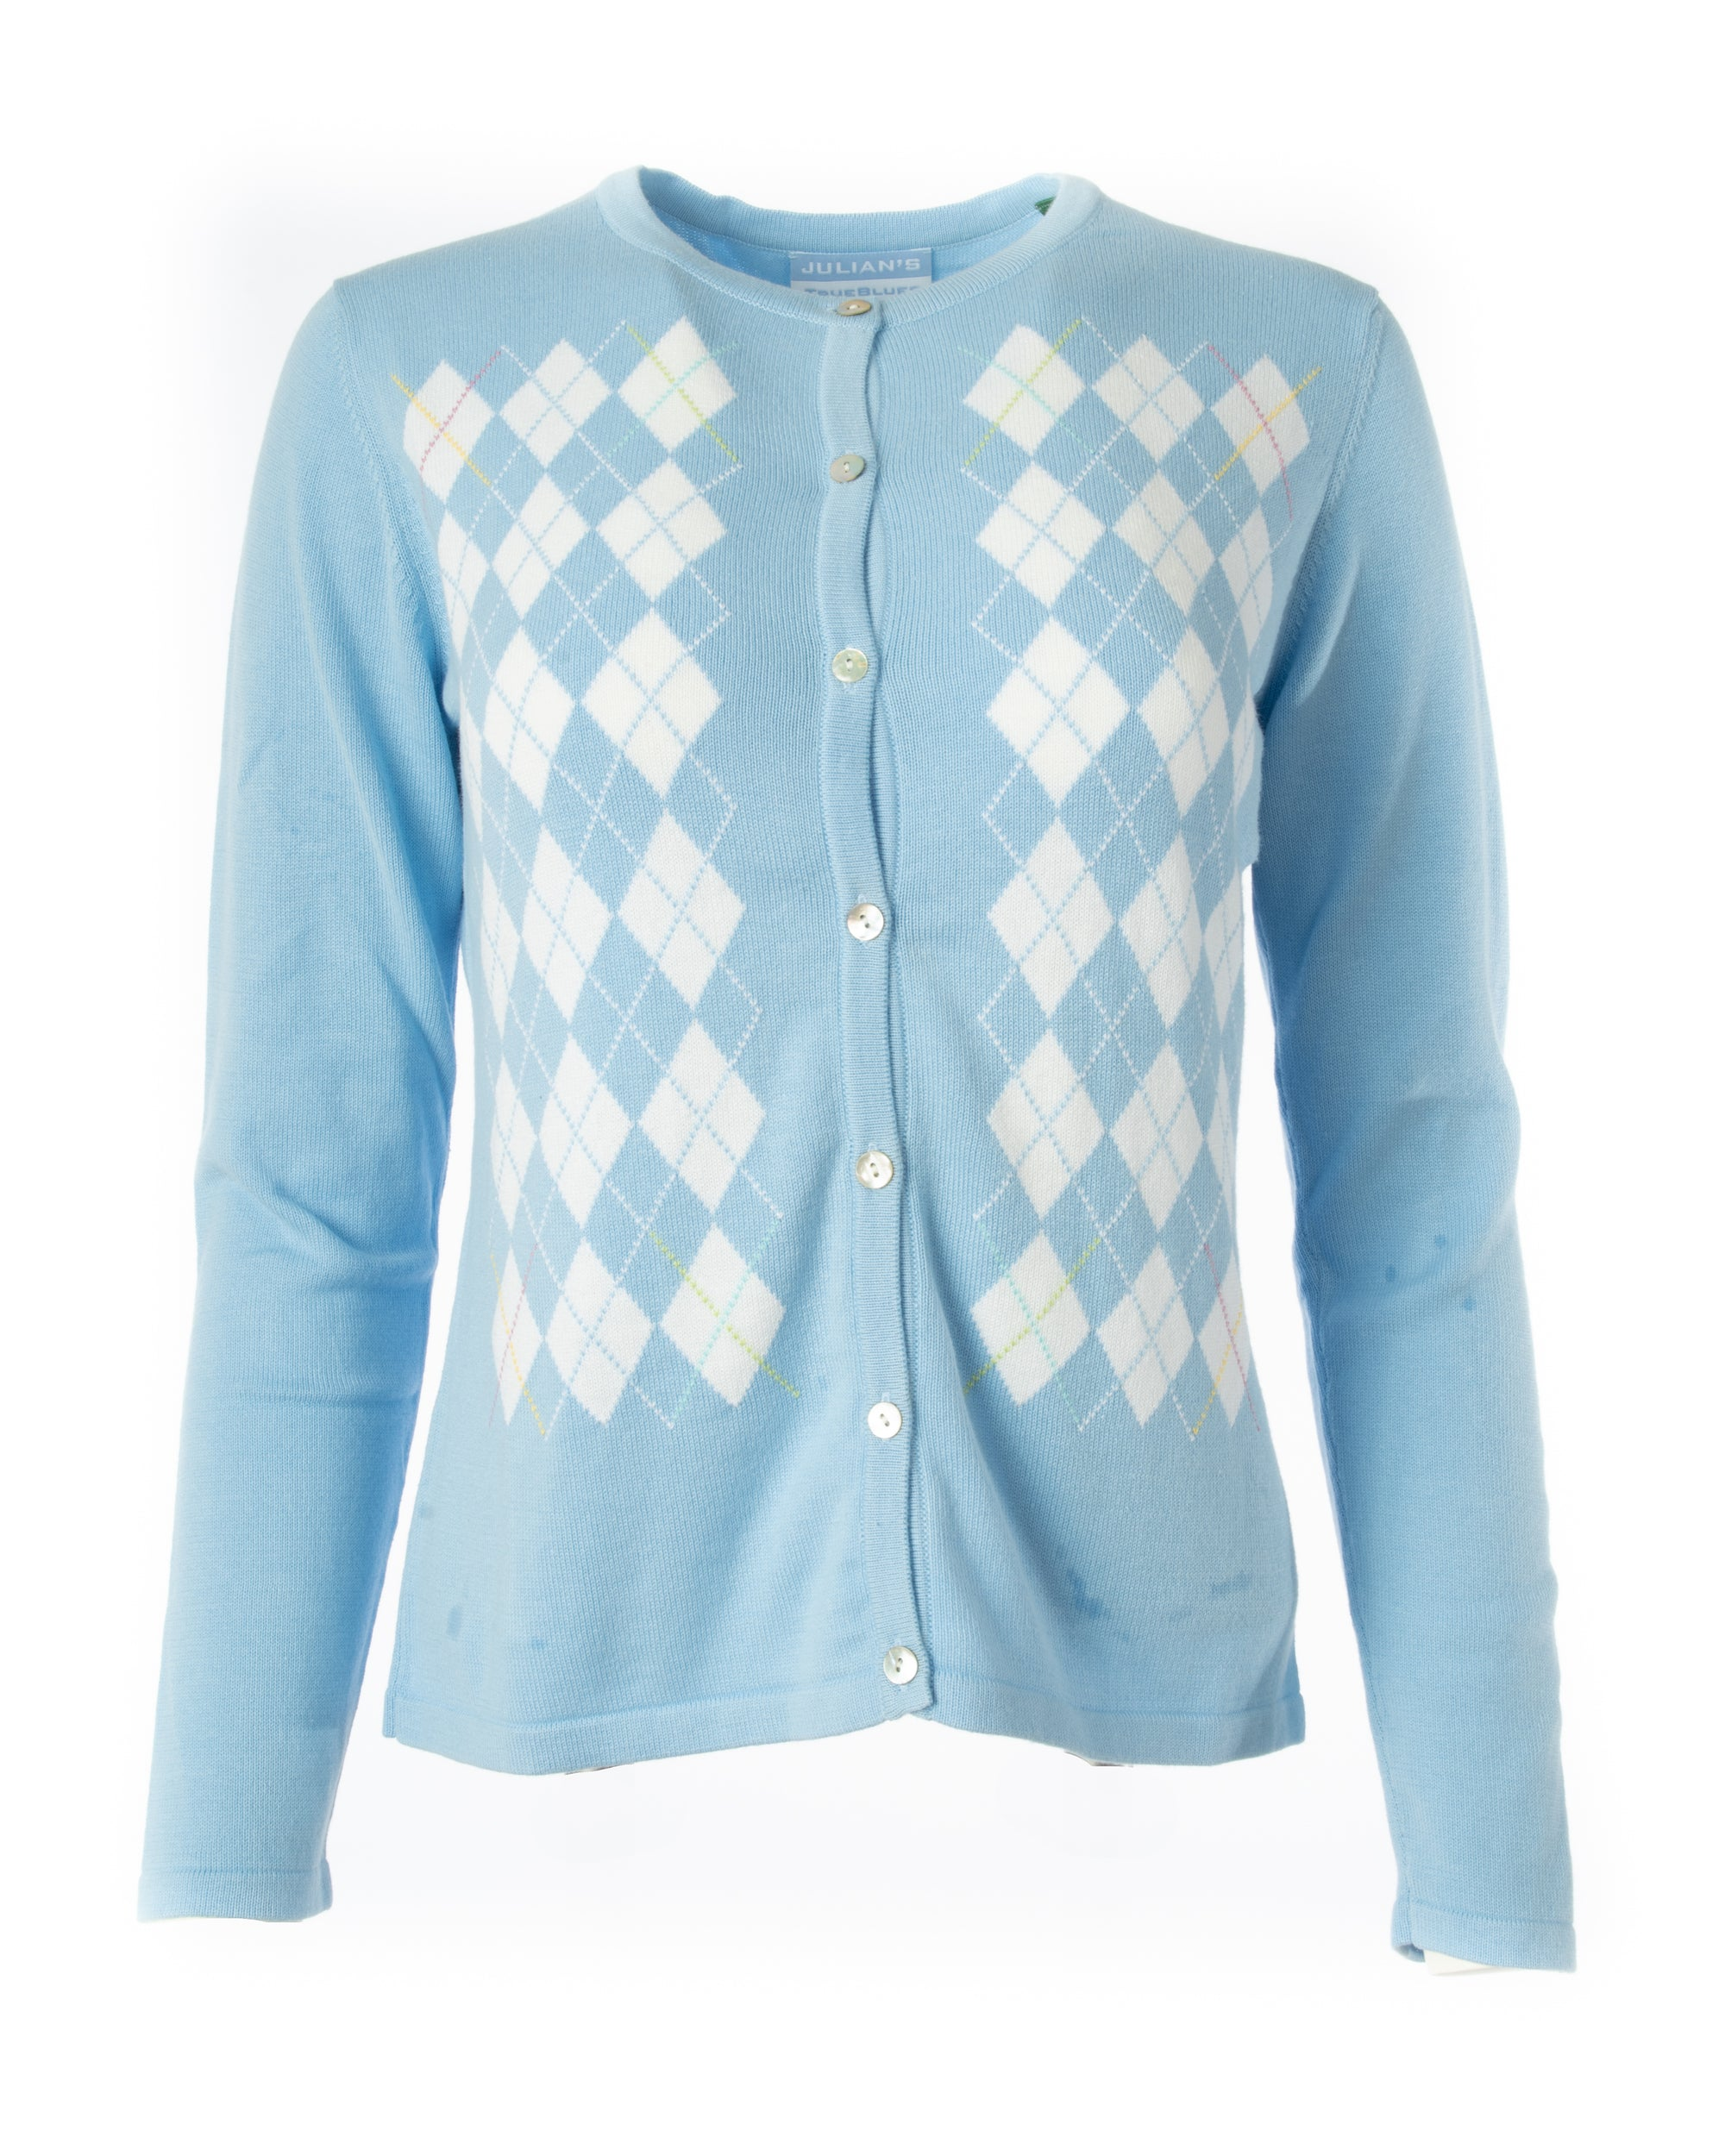 Argyle Pima Cotton Sweater